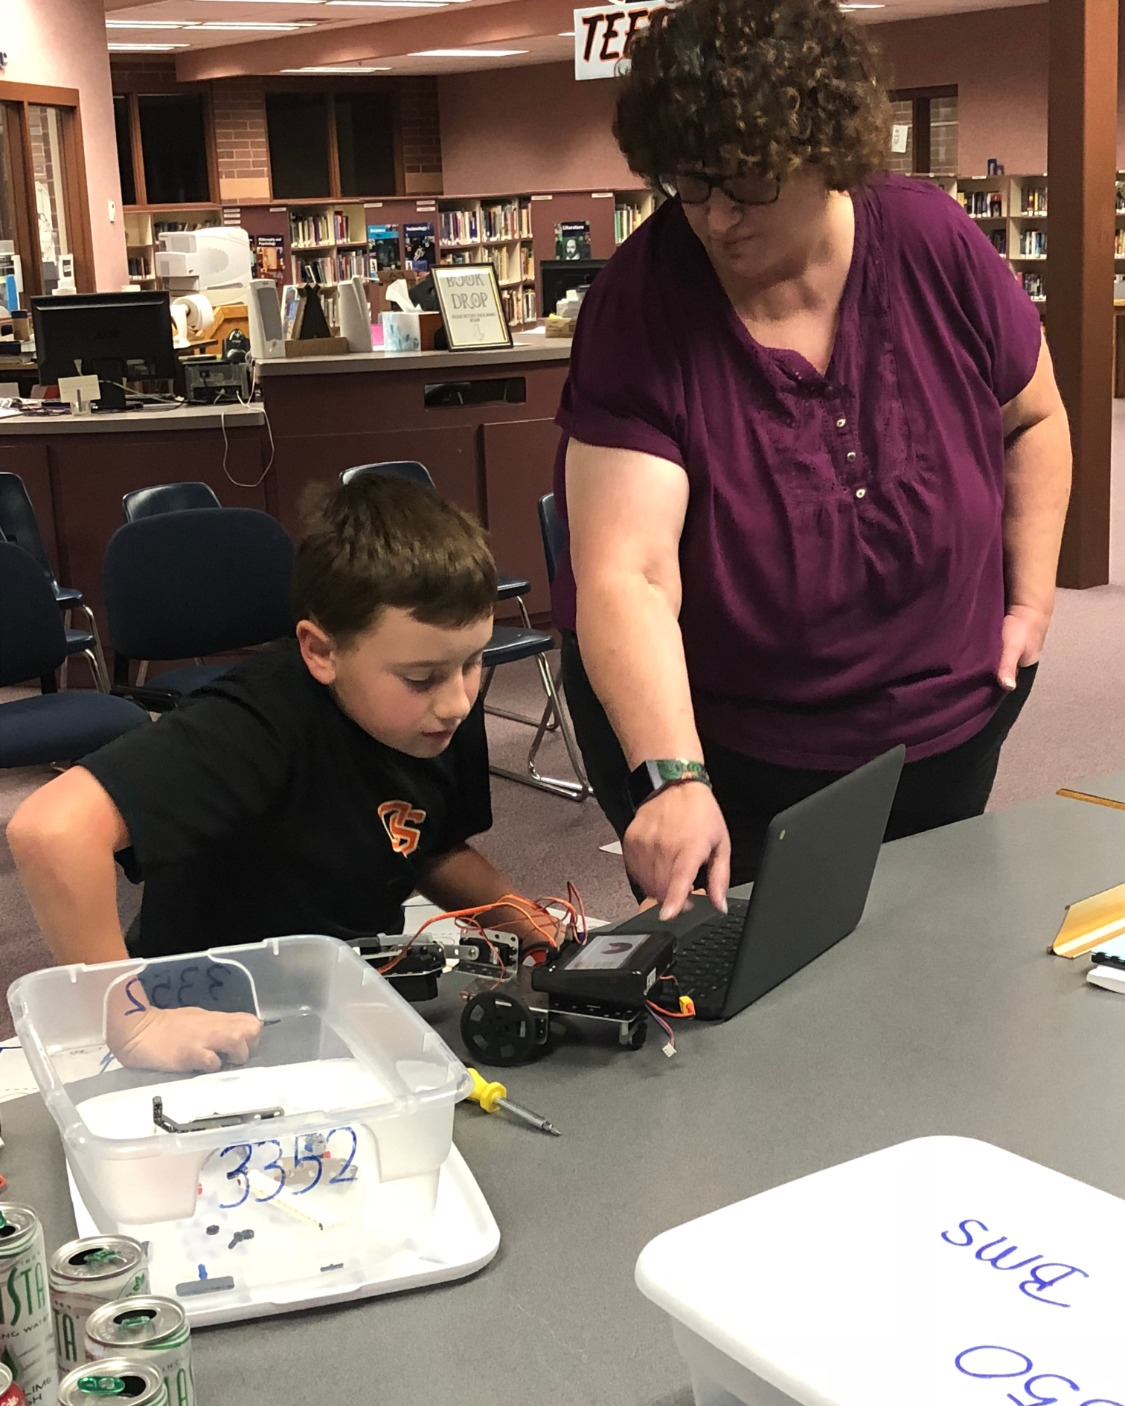 The Robotics Class in the Buhl Middle School has helped students learn about the progressing world of technology. Now the school board gets an inside look at how it's done.